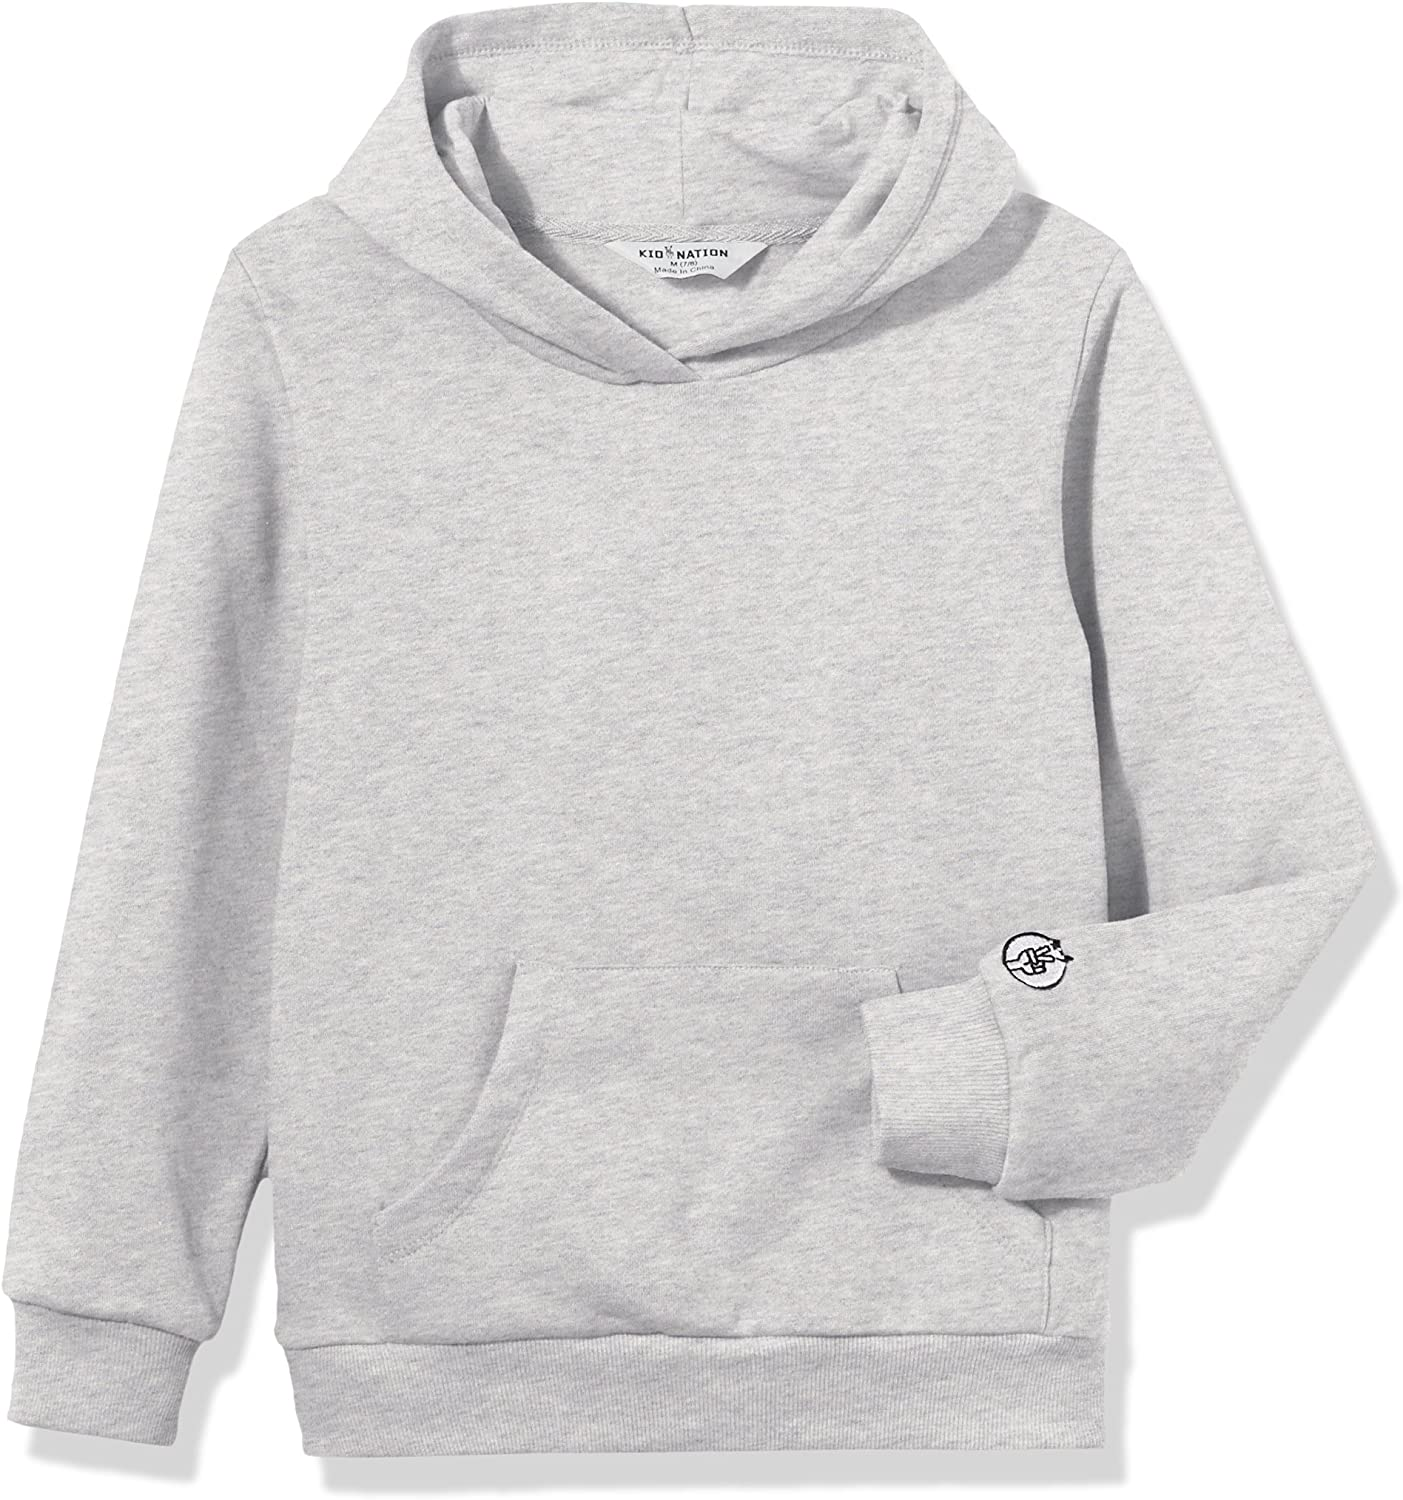 Kid Nation Kids' Soft Brushed Fleece Casual Basic Pullover Hooded Sweatshirt Hoodie for Boys or Girls 4-12 Years: Clothing